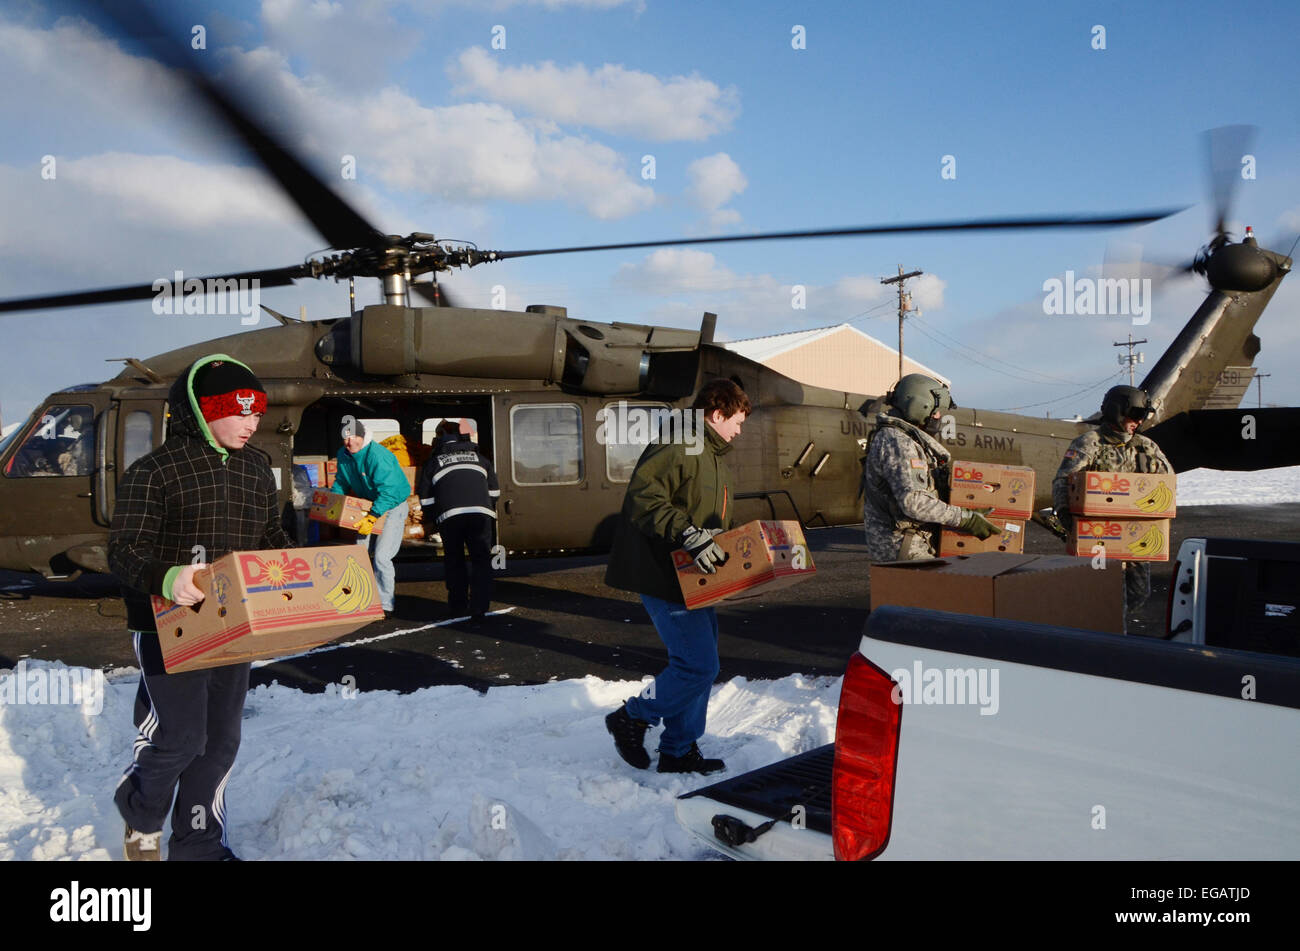 A Virginia Army National Guard aviation crew and residents unload emergency supplies for the residents of  remote - Stock Image